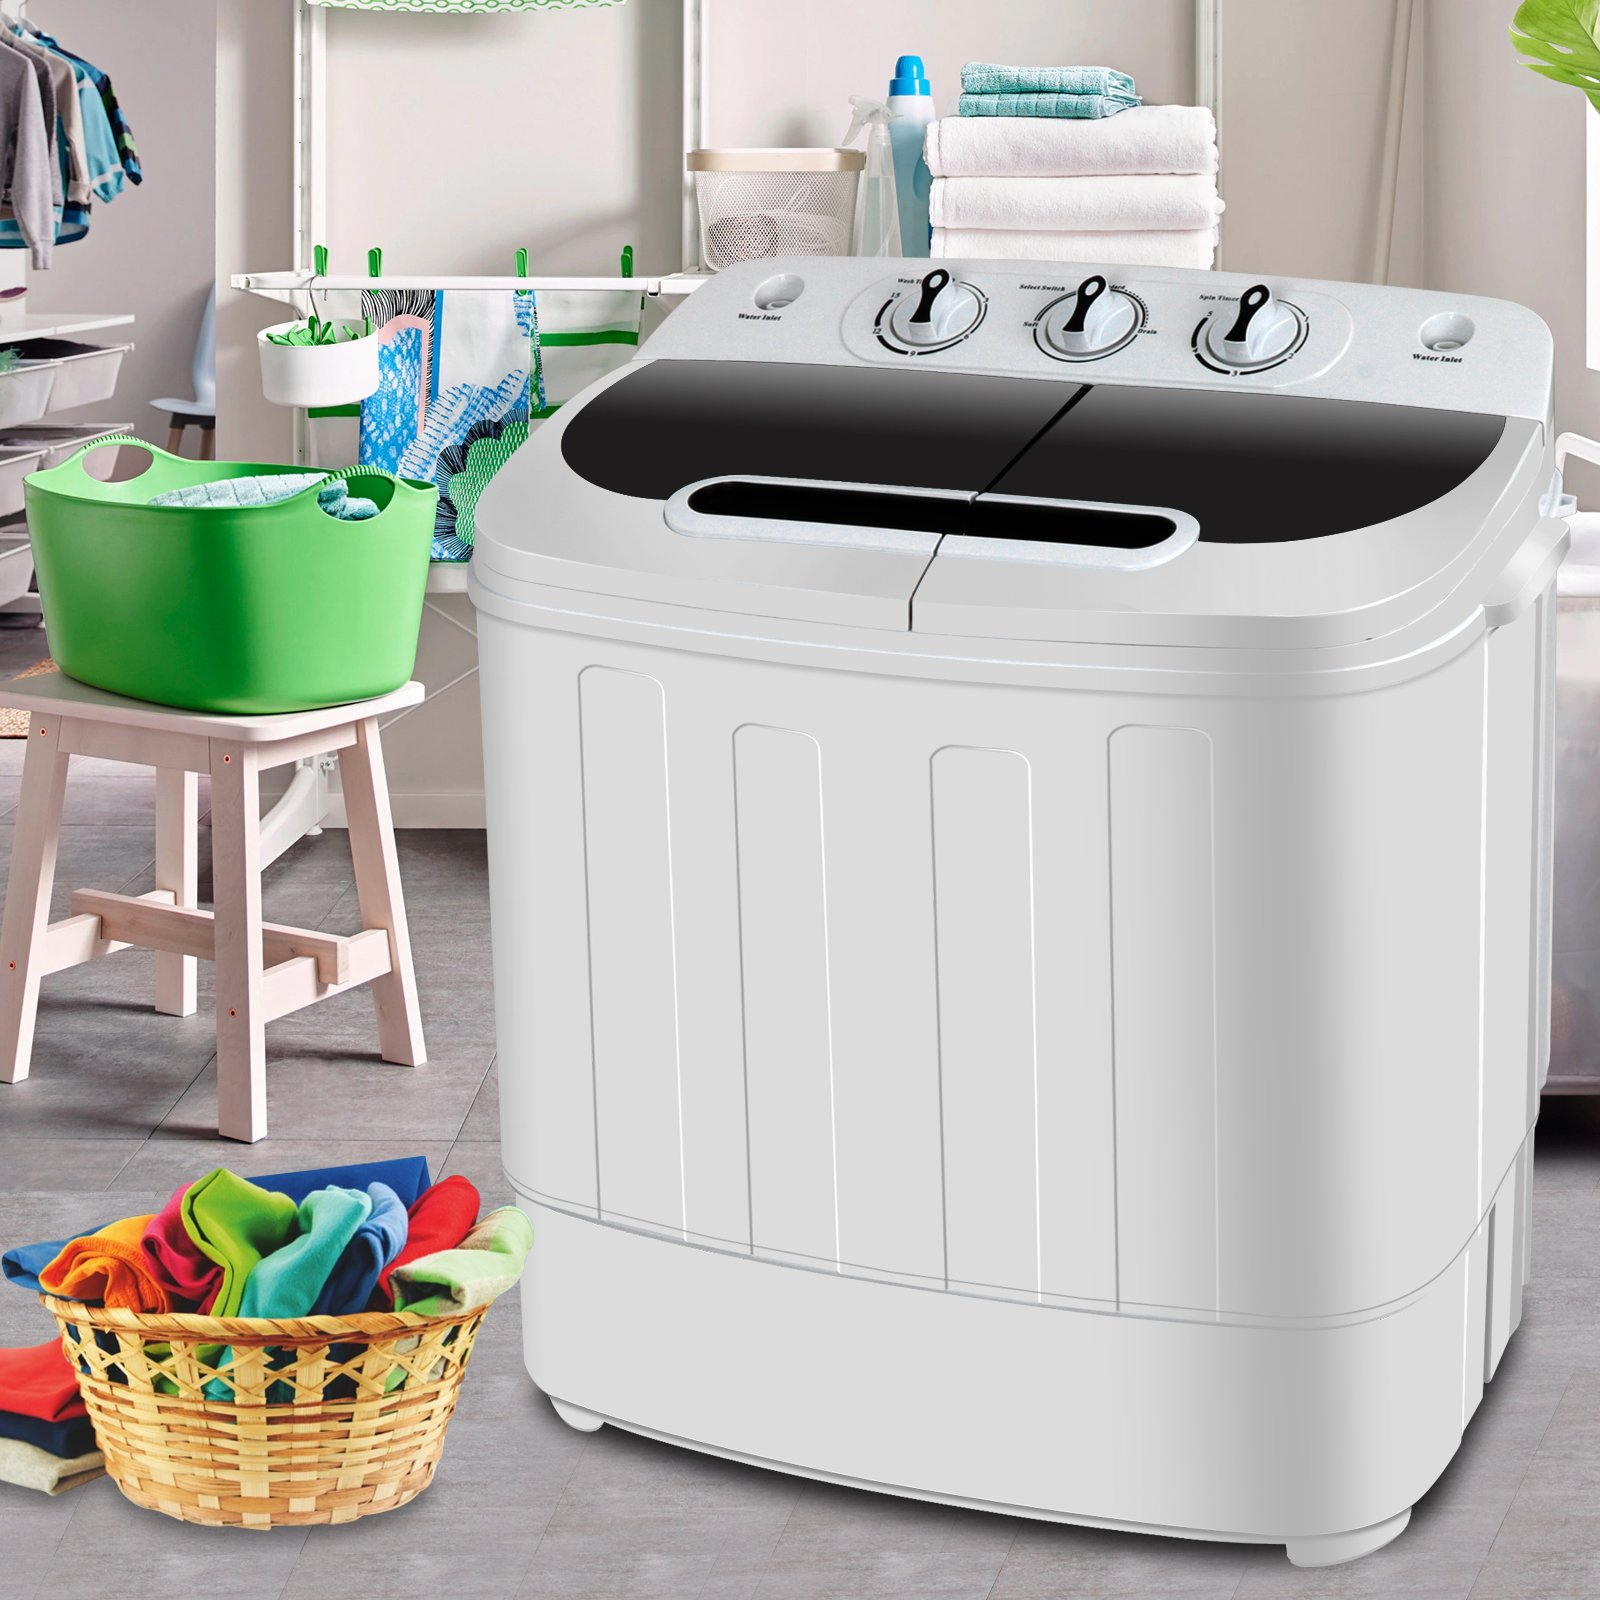 SUPER DEAL Portable Compact Mini Twin Tub Washing Machine w/Wash and Spin Cycle, Built-in Gravity Drain, 13lbs Capacity For Camping, Apartments, Dorms, College Rooms, RV's, Delicates and more by SUPER DEAL